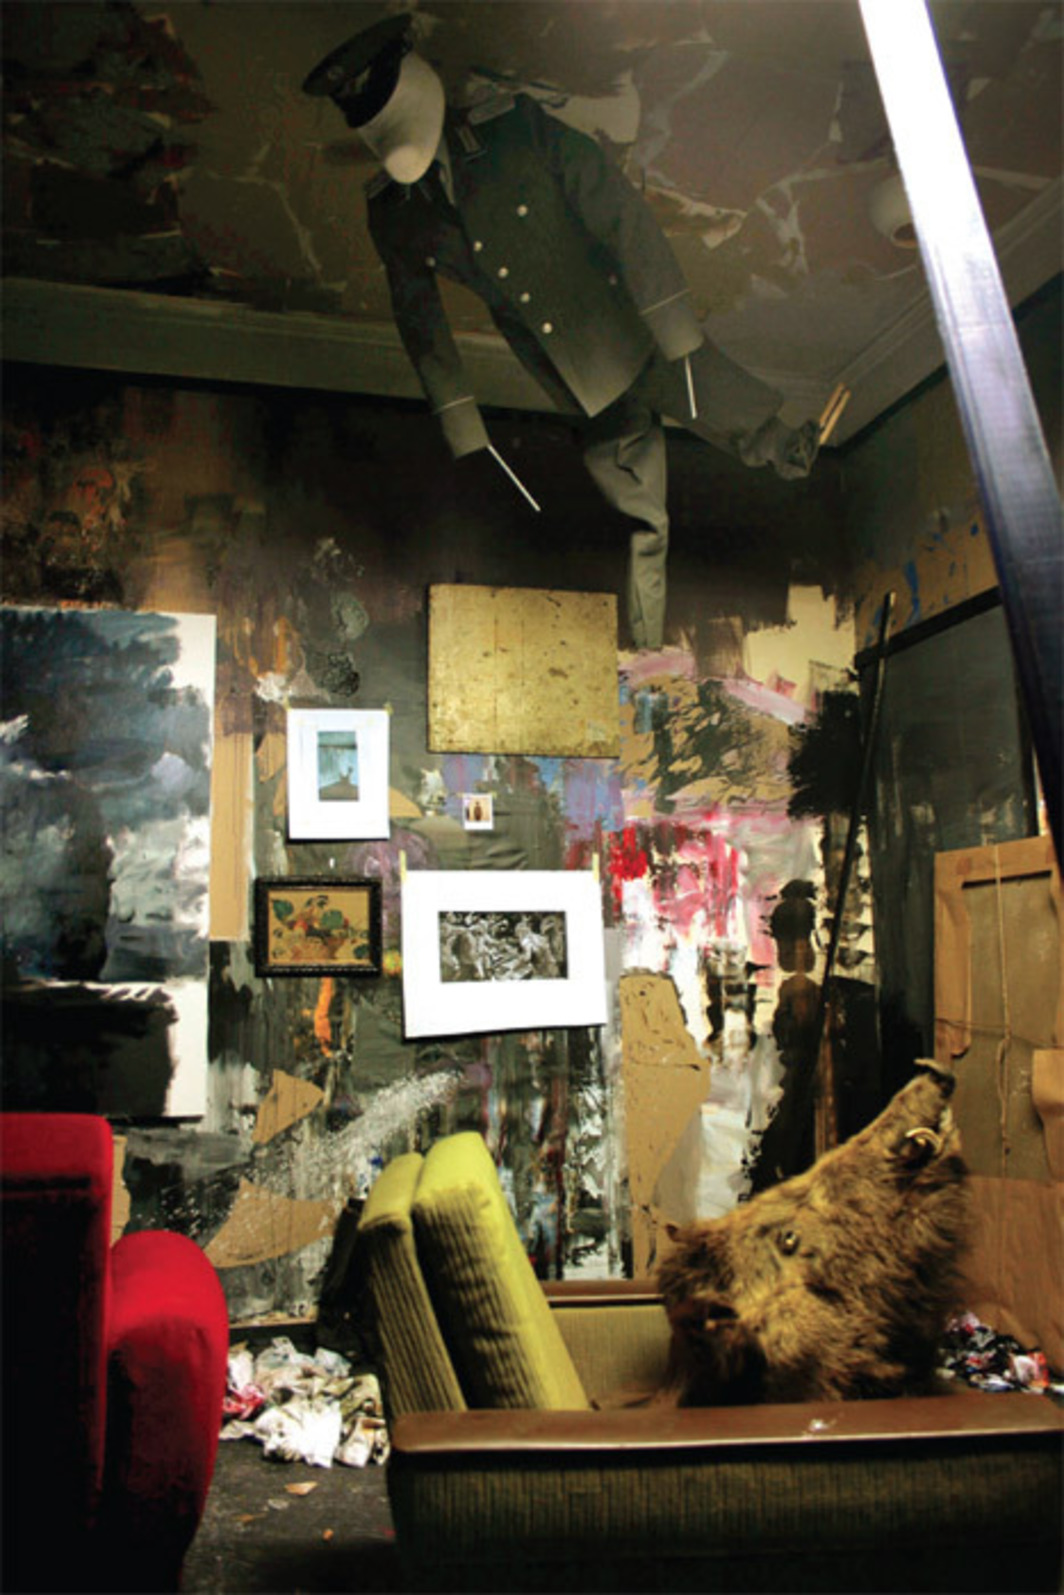 Adrian Ghenie, Dada Room, 2010, mixed media. Installation view.